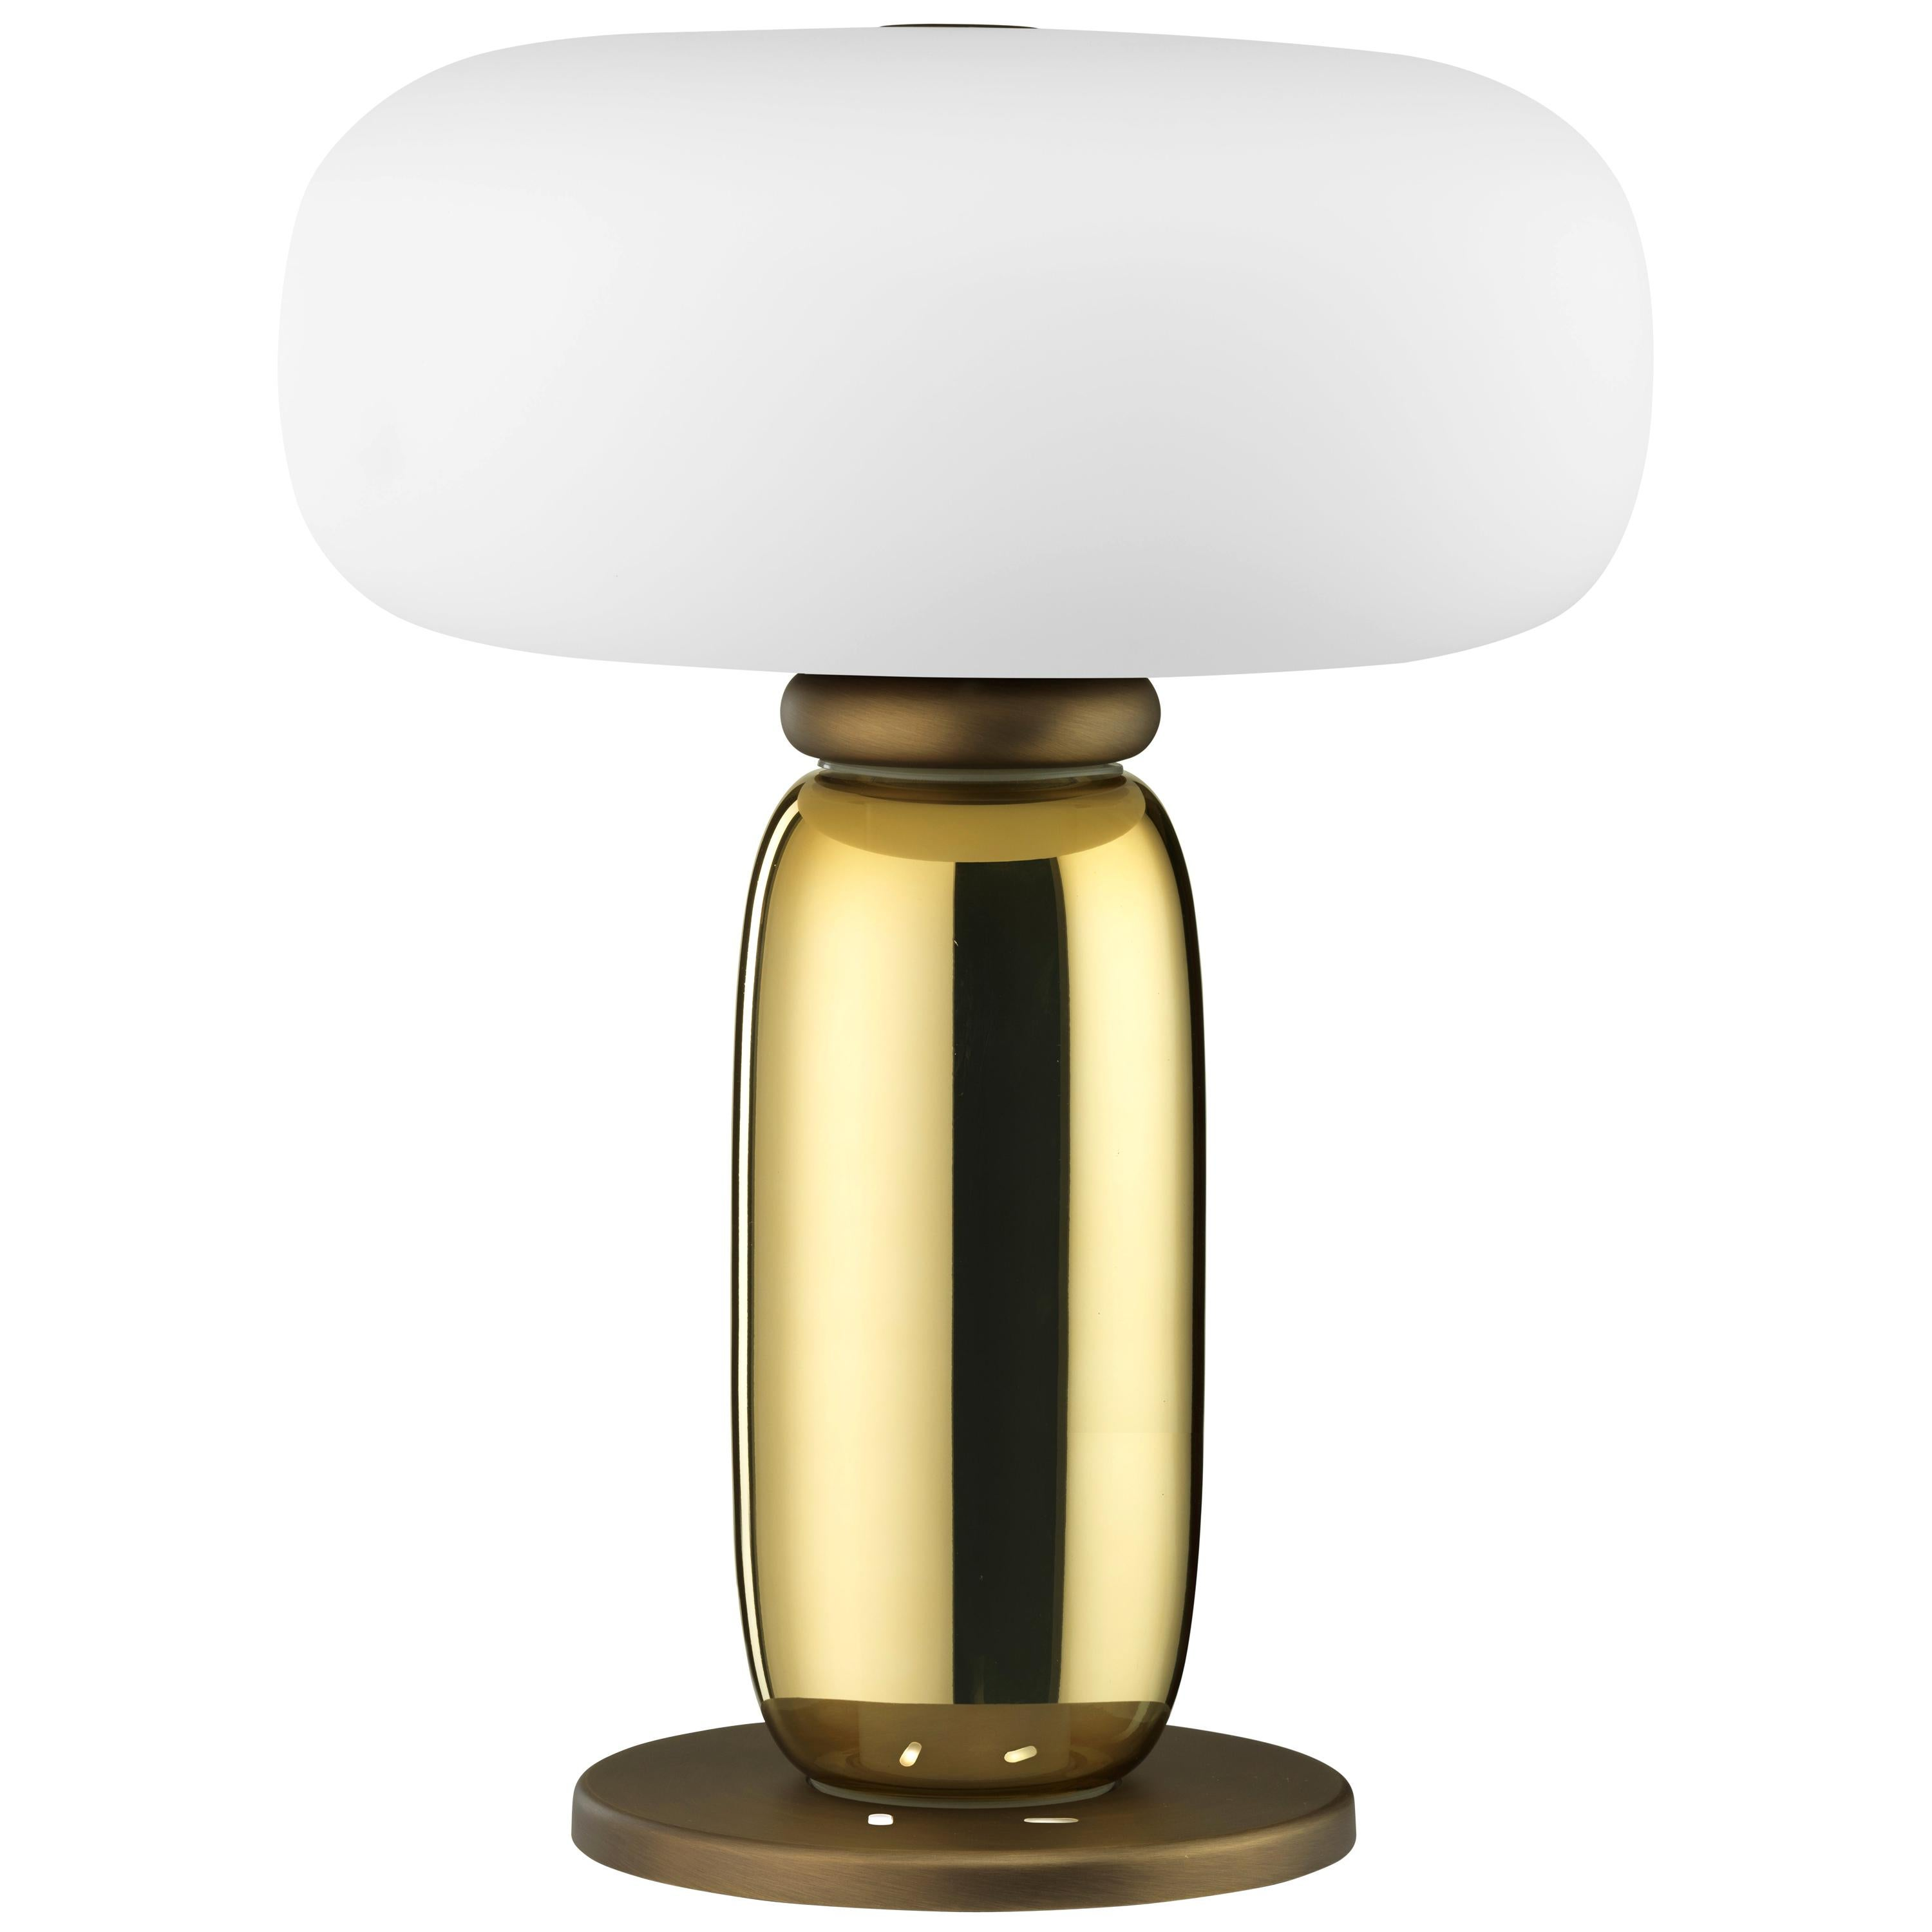 Ghidini 1961 One on One Table Lamp in Burnished Brass and Glass by Branch